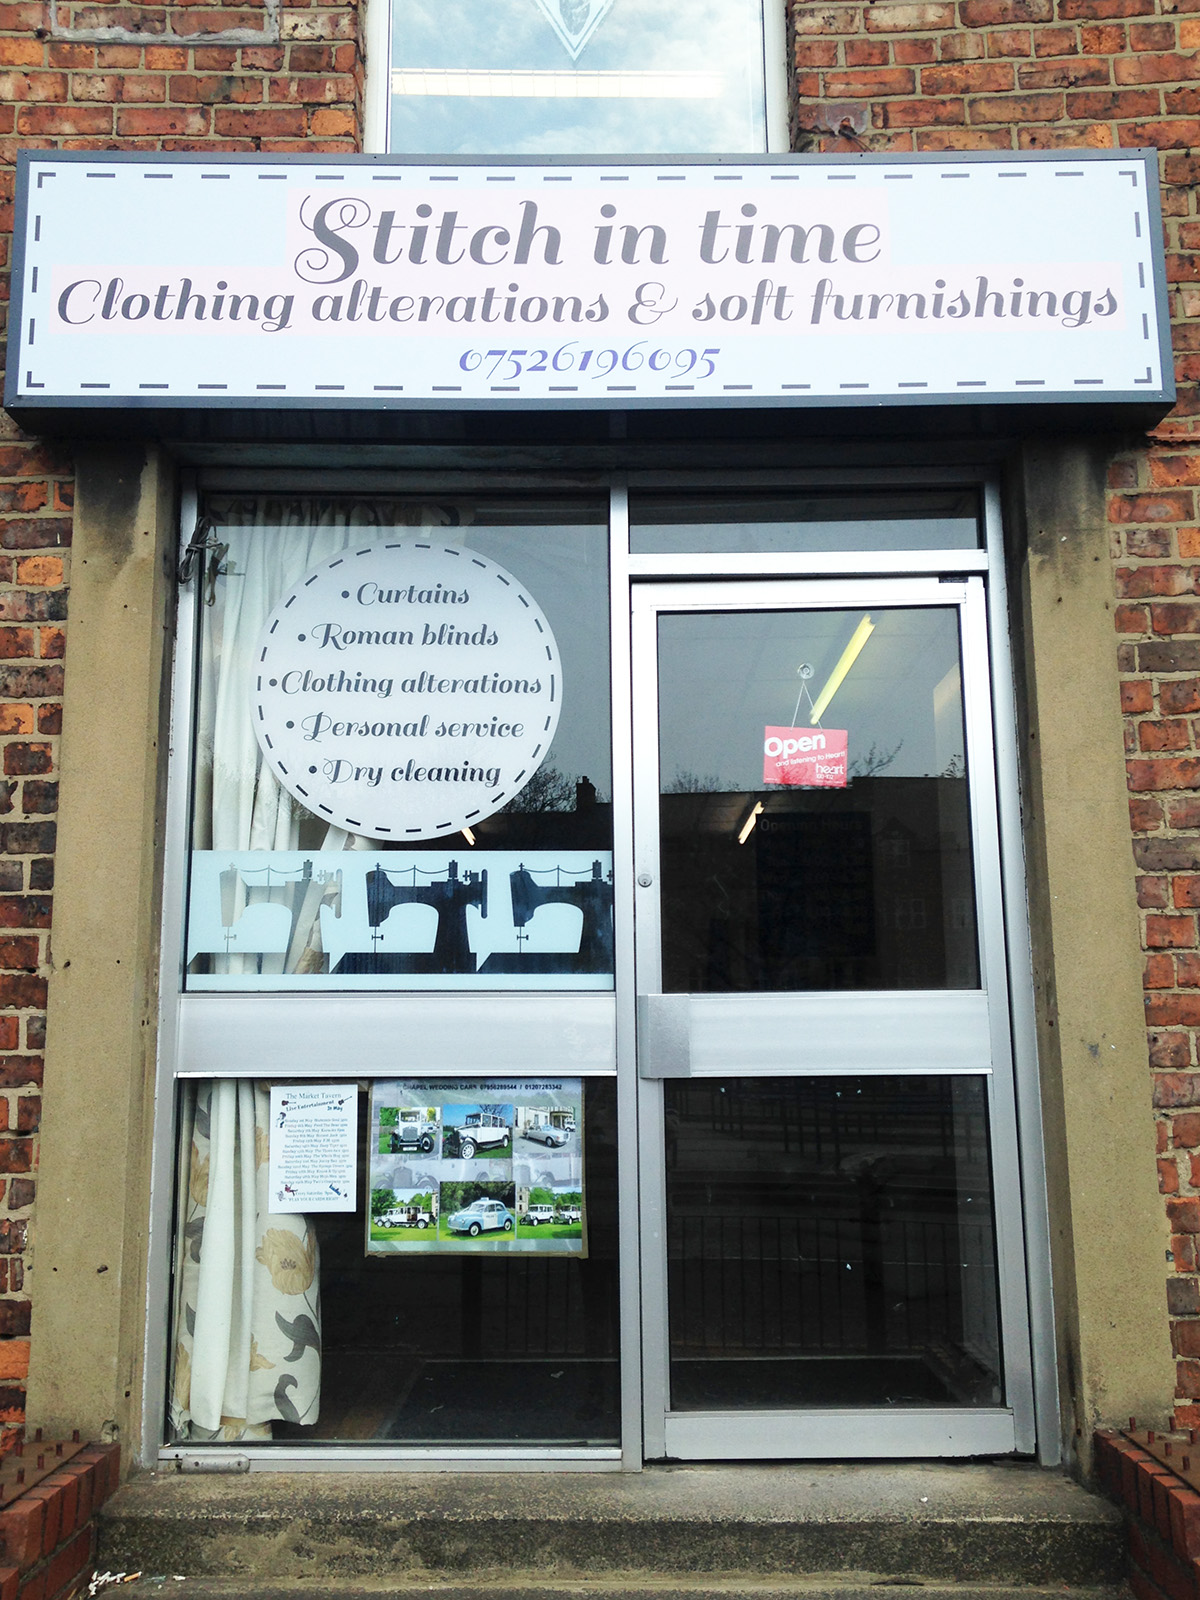 Improving Retail Offer In Chester-le-Street